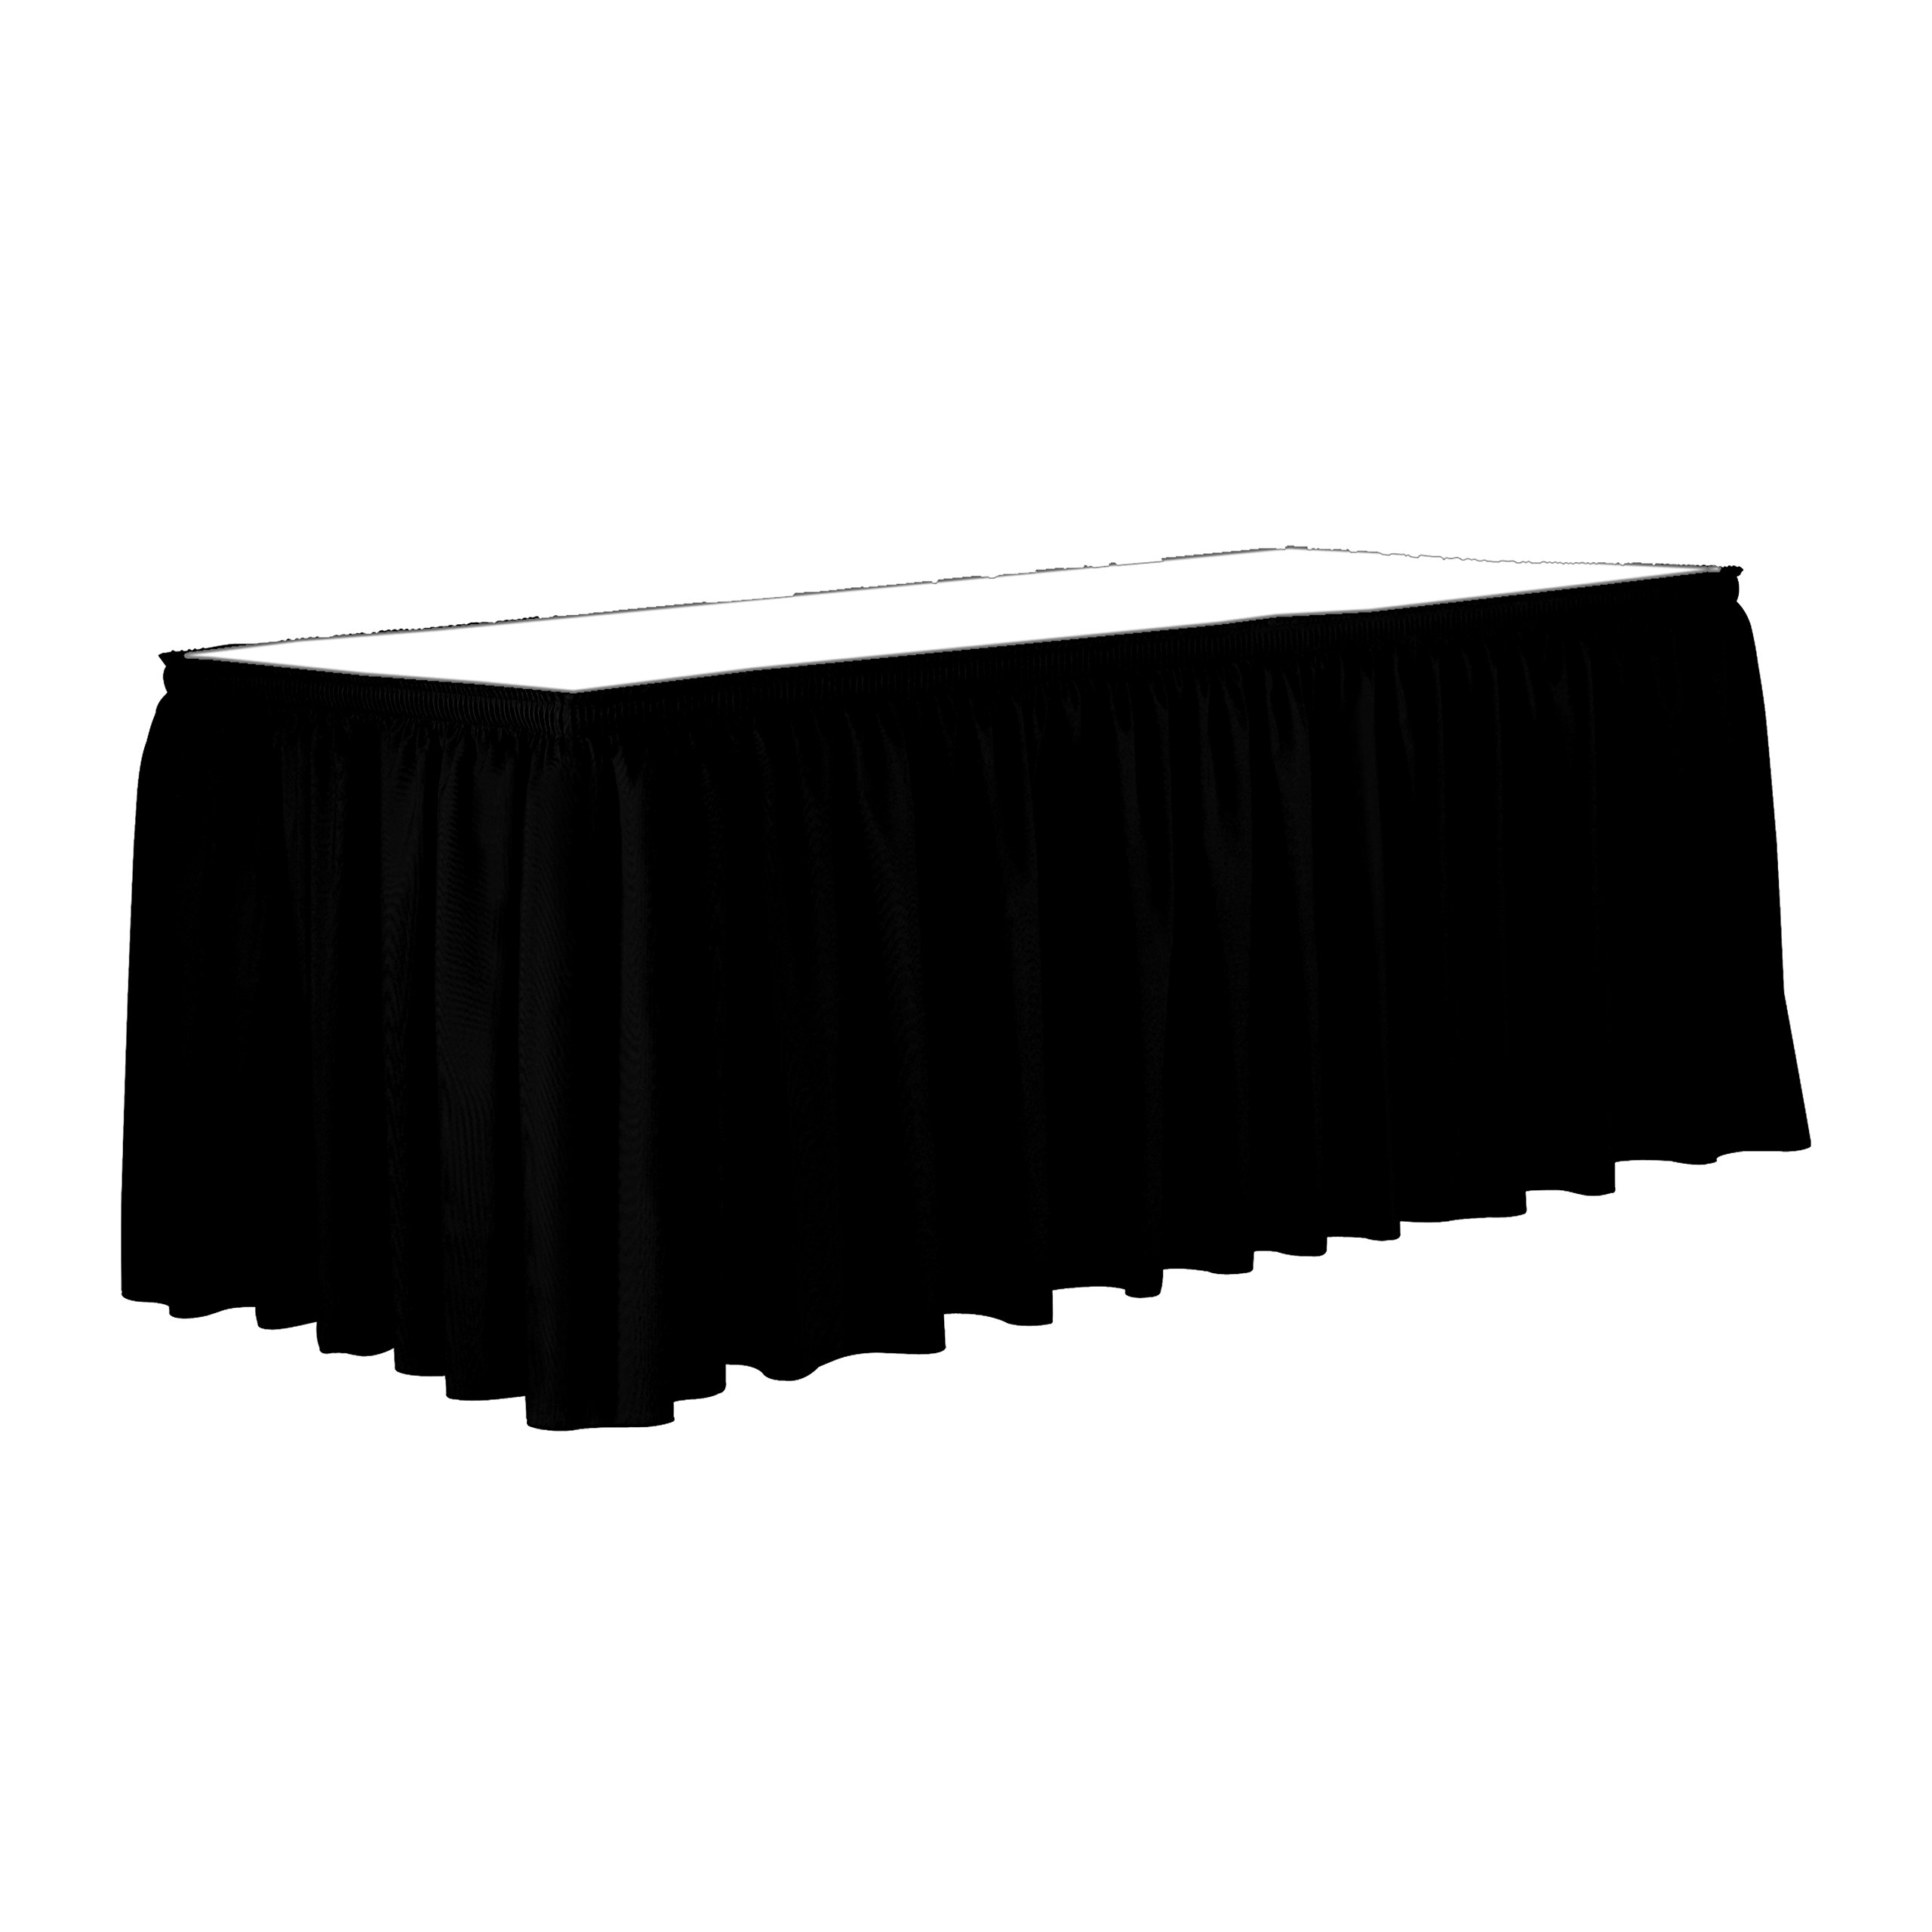 Ultimate Textile 17 ft. Shirred Pleat Polyester Table Skirt Black